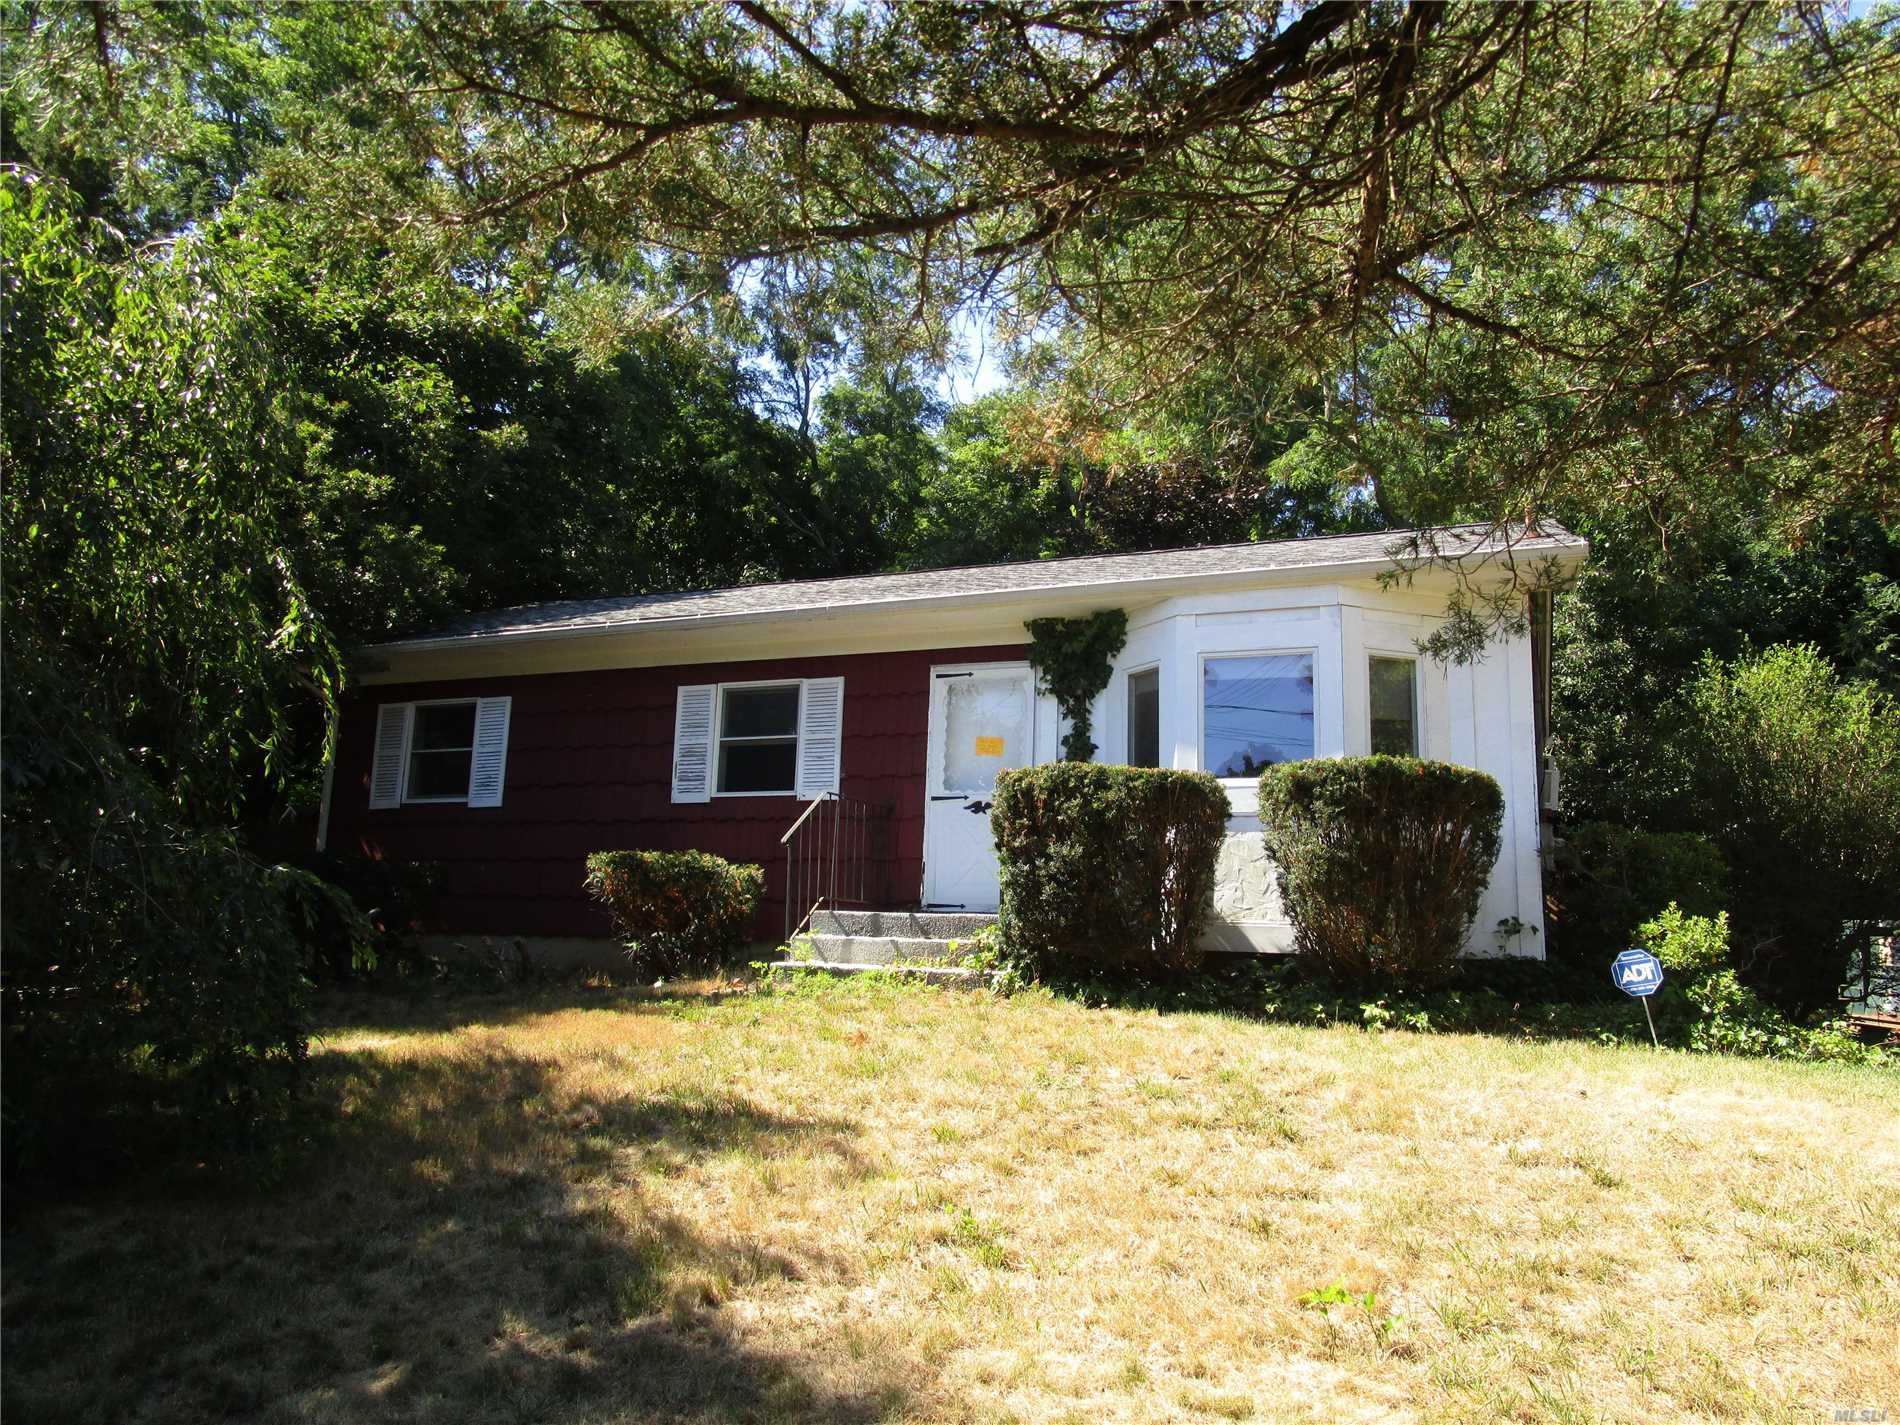 Perfect Starter Ranch In This Quaint And Peaceful Neighborhood Features, New Washer/Dryer, 3Bdrs, 1Fbath, Full Basement W/Ose Entrance And Rear Deck.